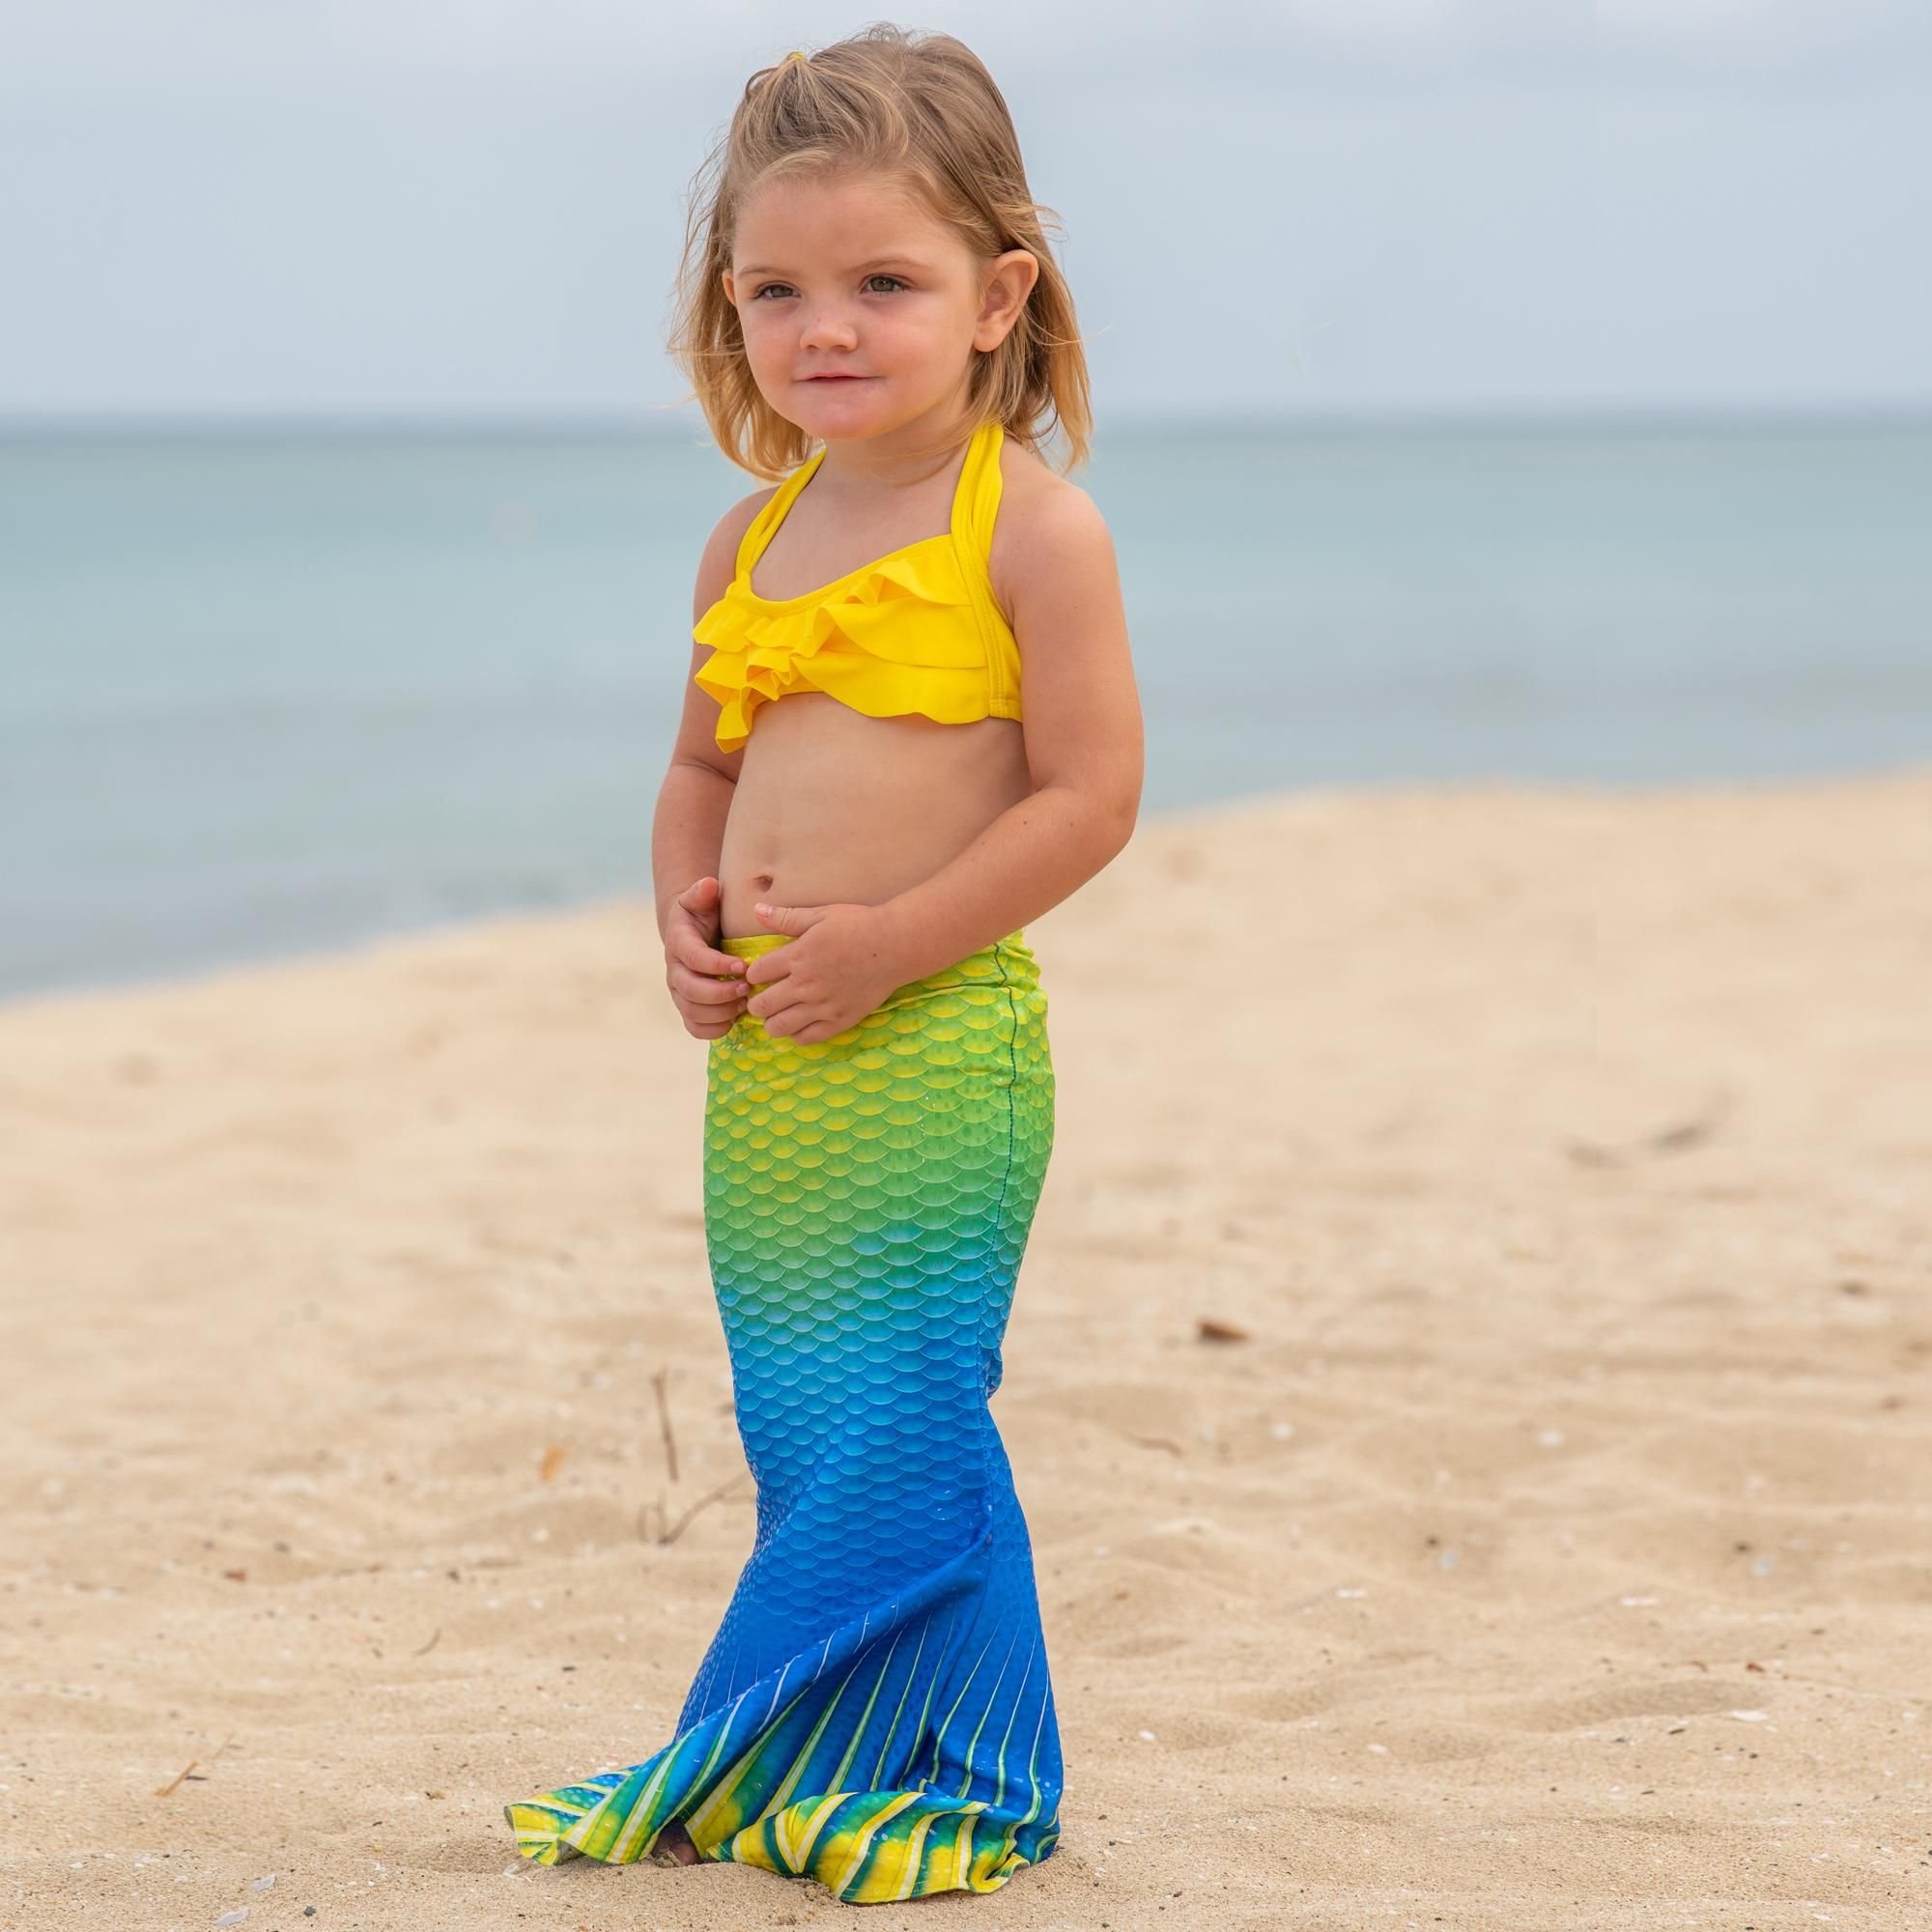 Bali Breeze Toddler Mermaid Tail (Limited Edition)